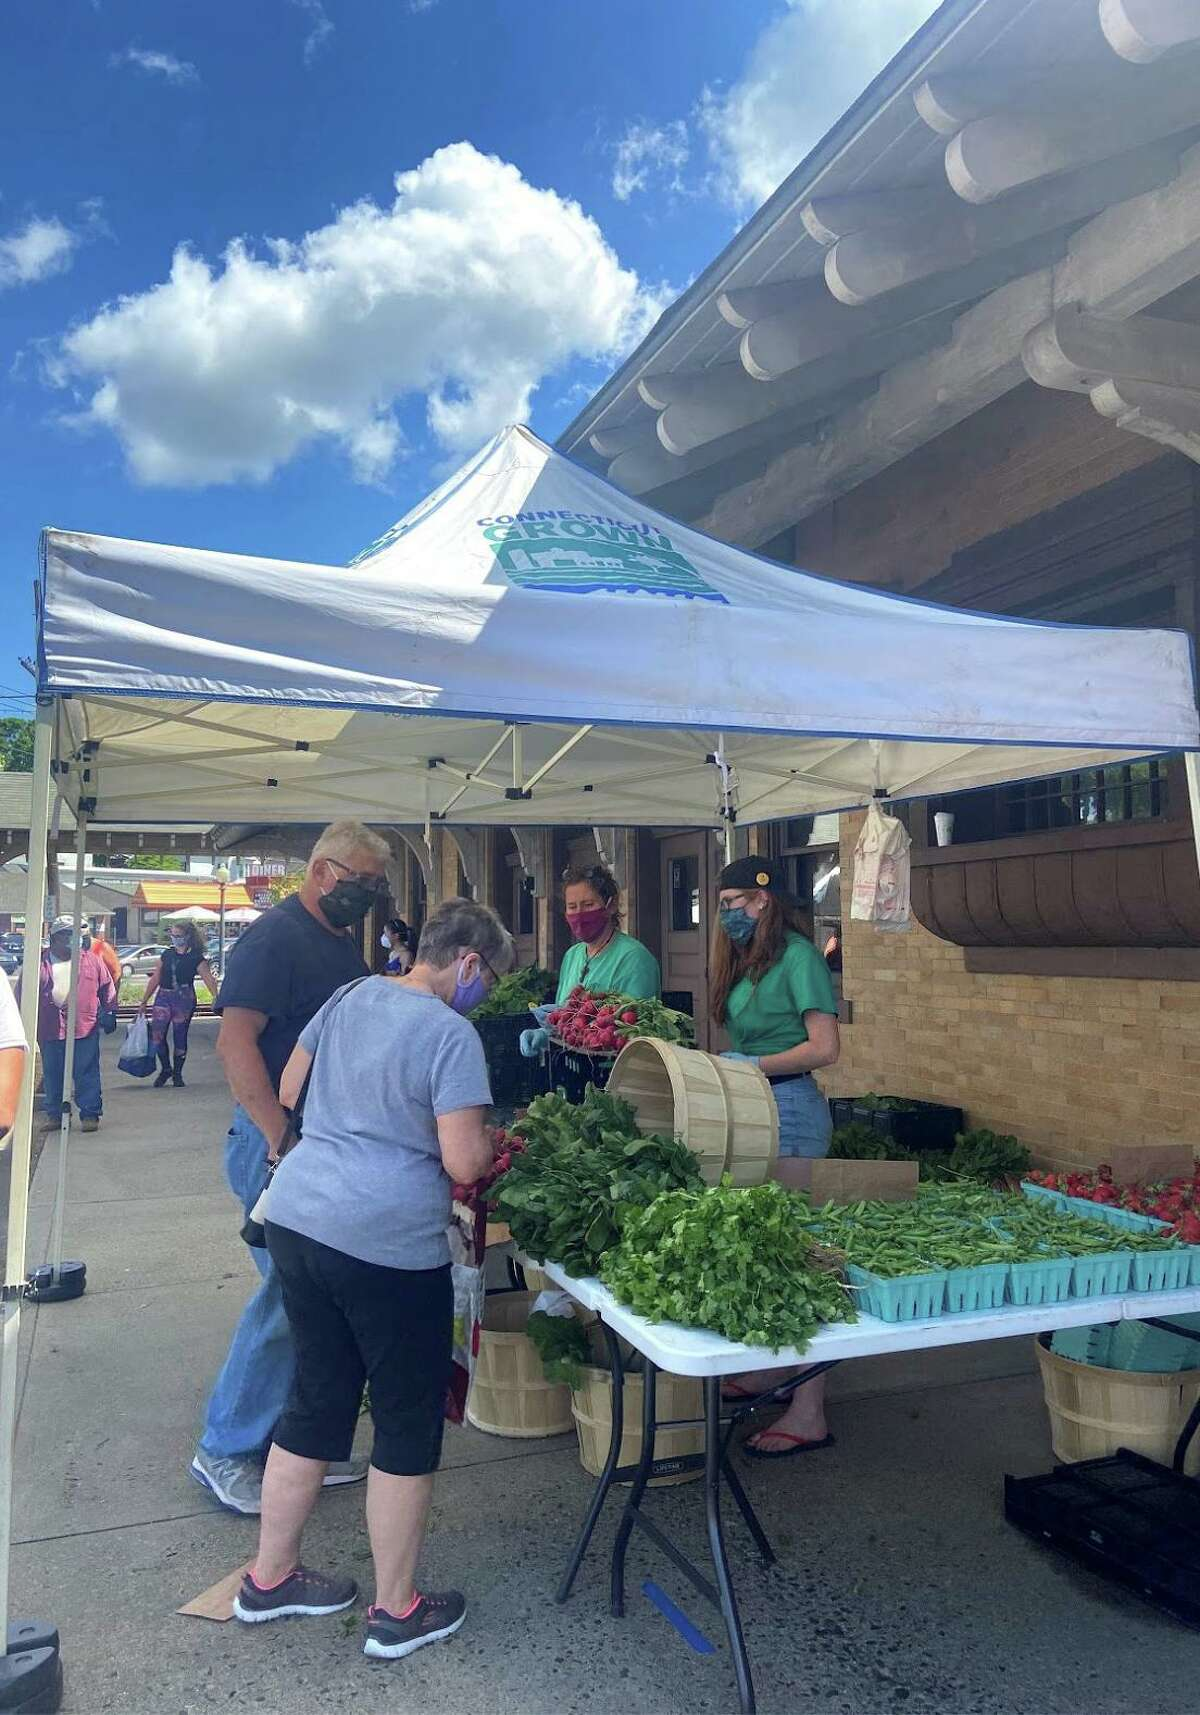 Customers buy produce at the Danbury Farmers Market. Located outside the Danbury Railway Museum, it's open Fridays from 10 a.m. to 2 p.m.